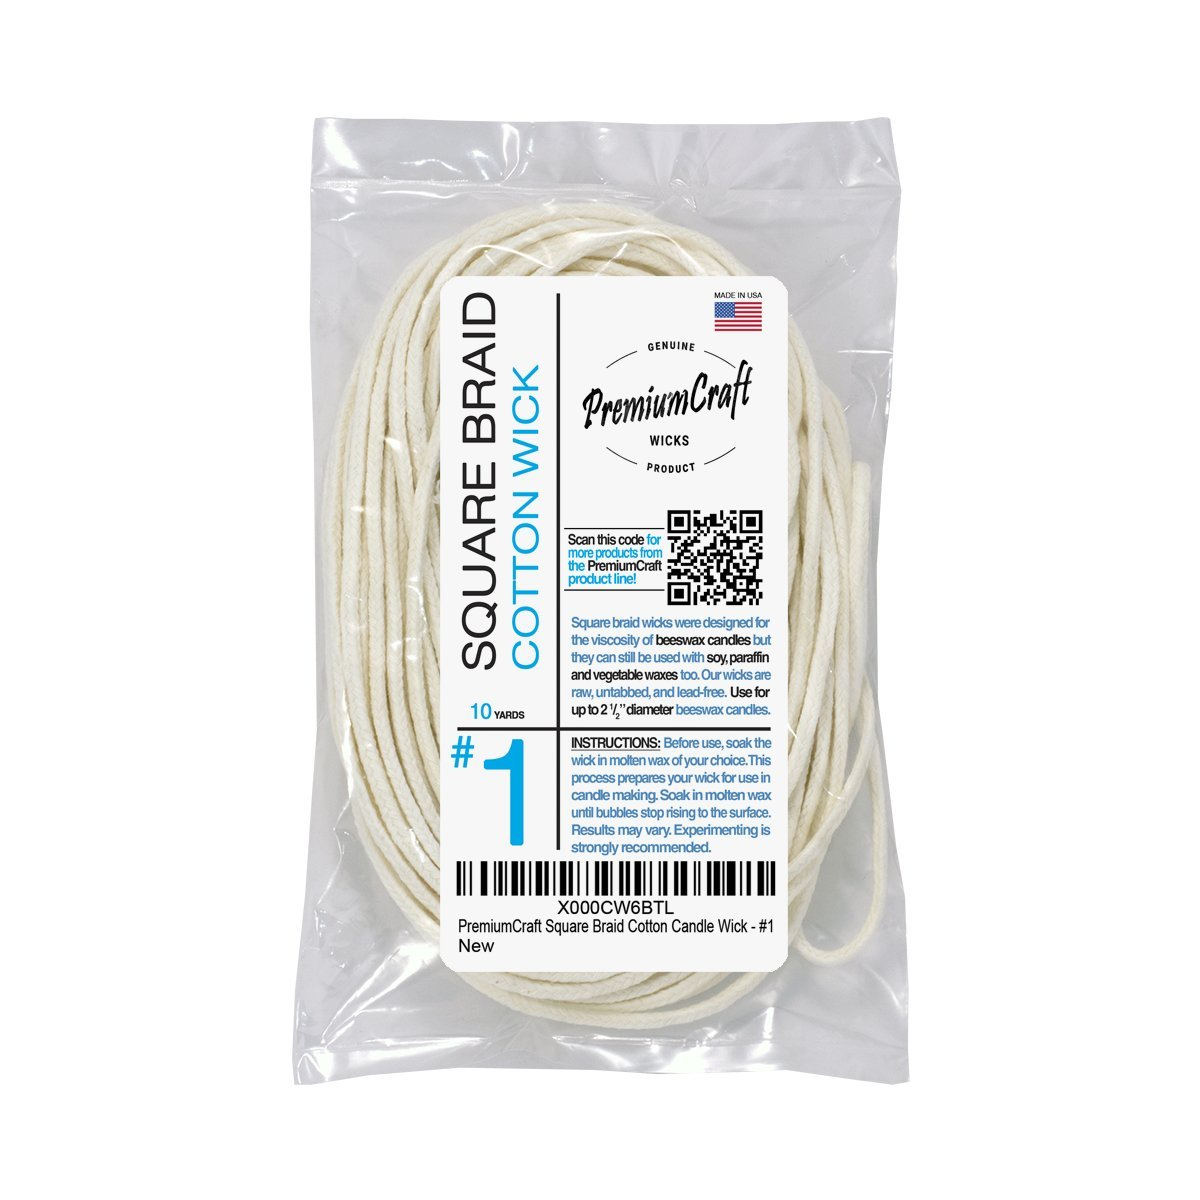 PremiumCraft Square Braid Cotton Candle Wick - #1 SB11